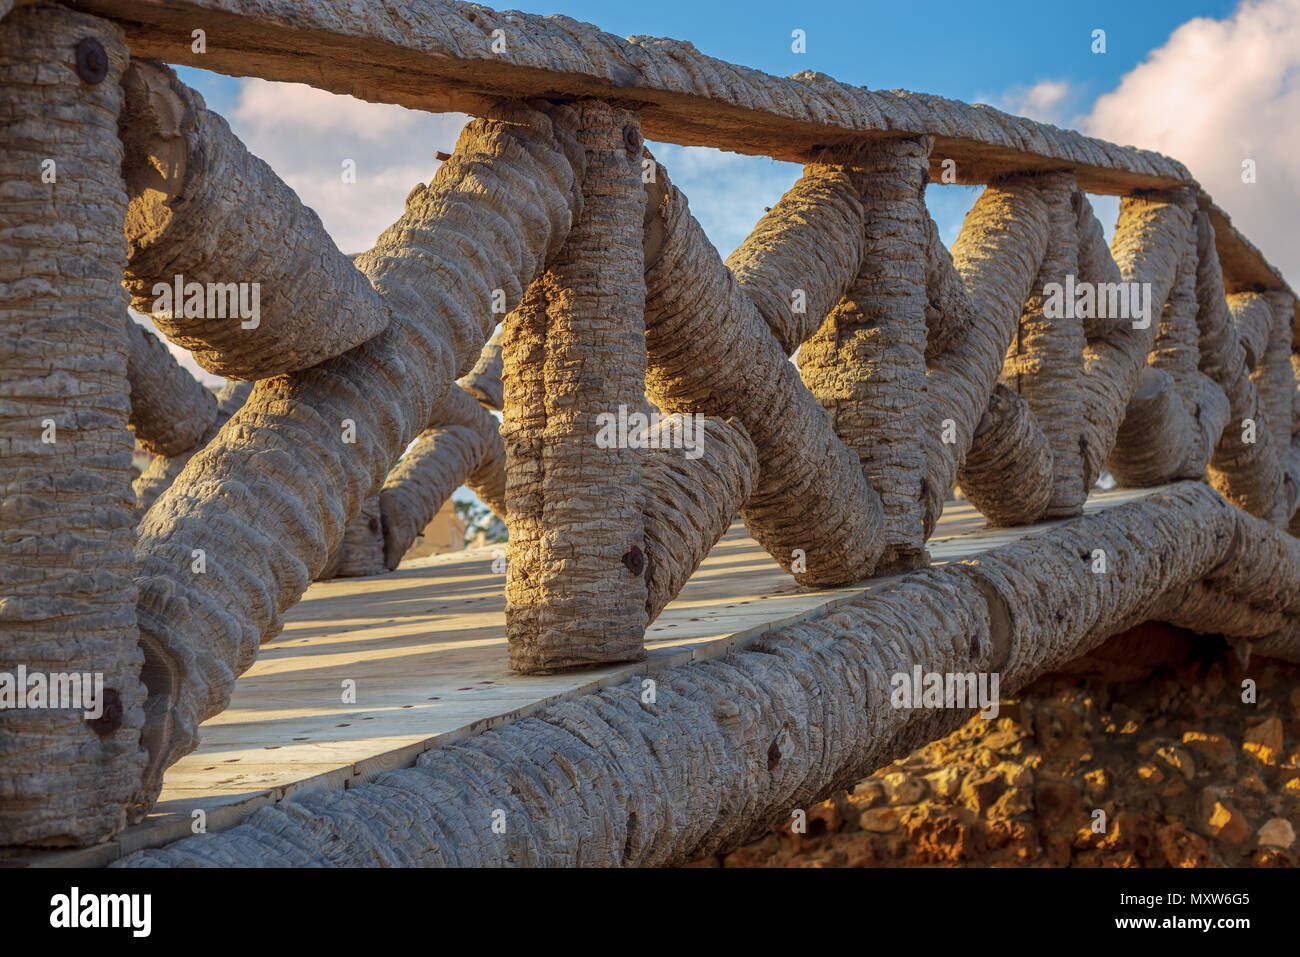 Wooden fence made of palm trunks with partly cloudy sky in sunrise time at Montaza public park in summer time, Alexandria, Egypt - Stock Image